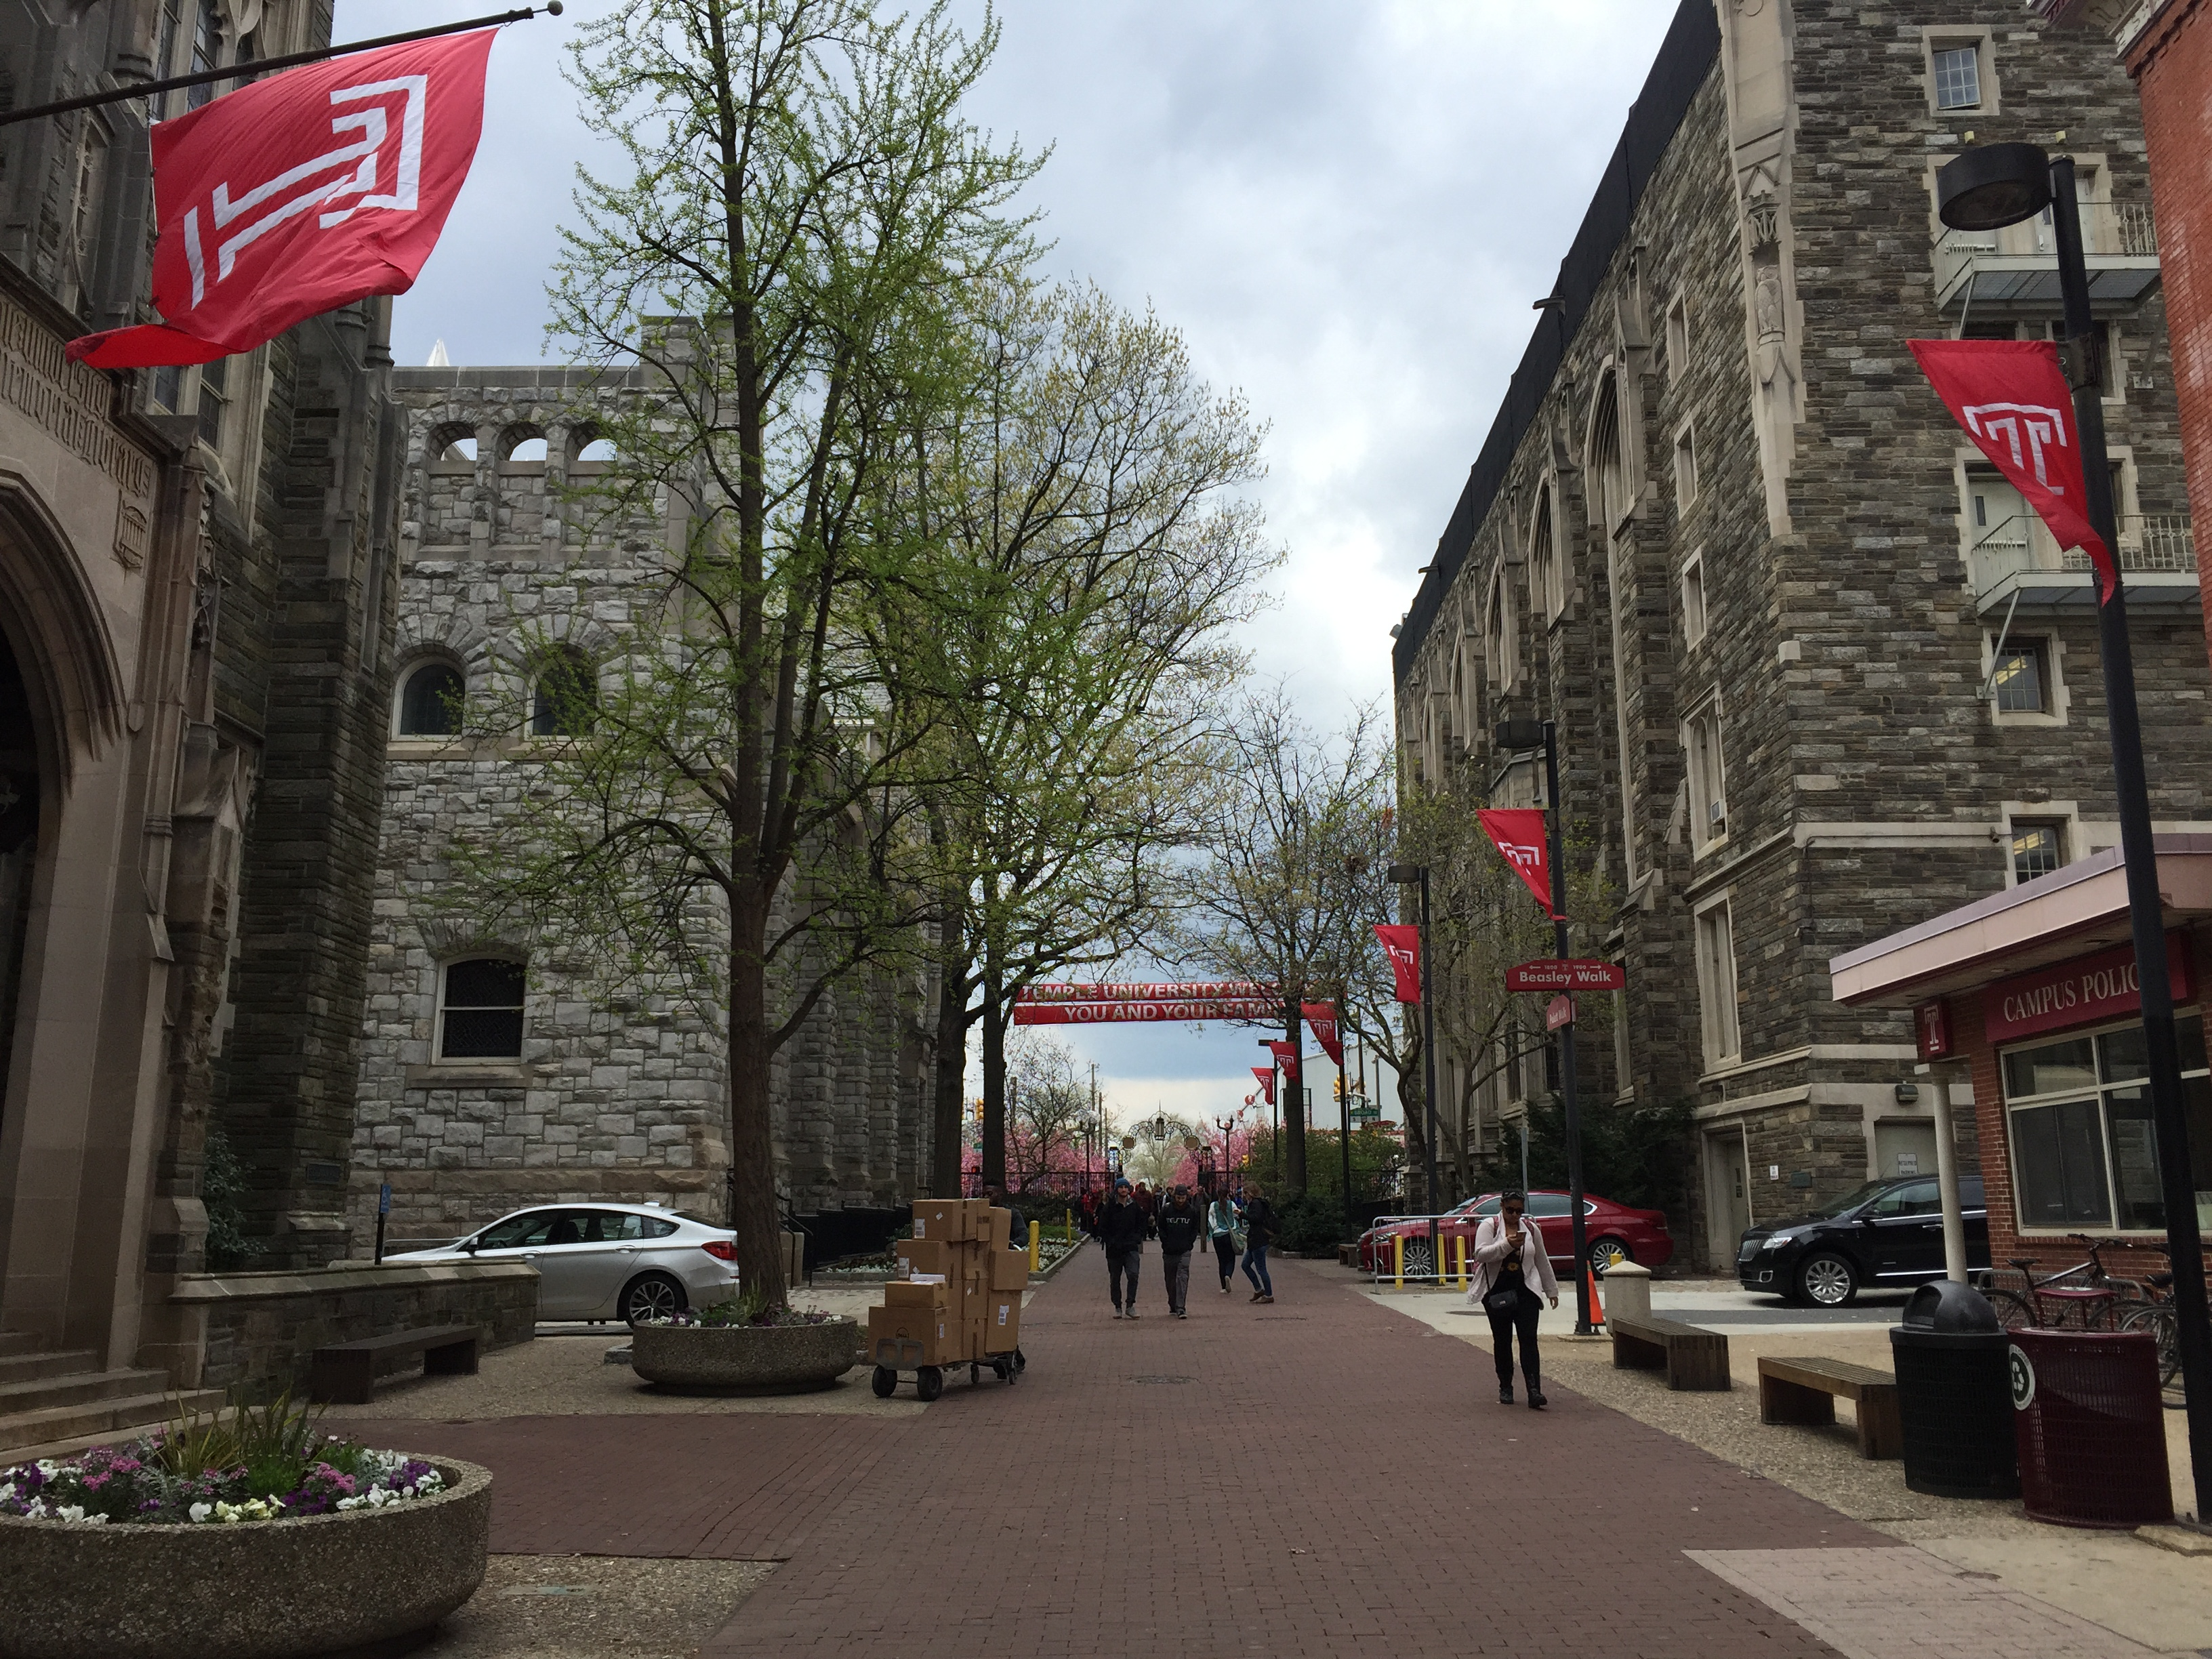 Students Aim to Speak at Graduation Commencement